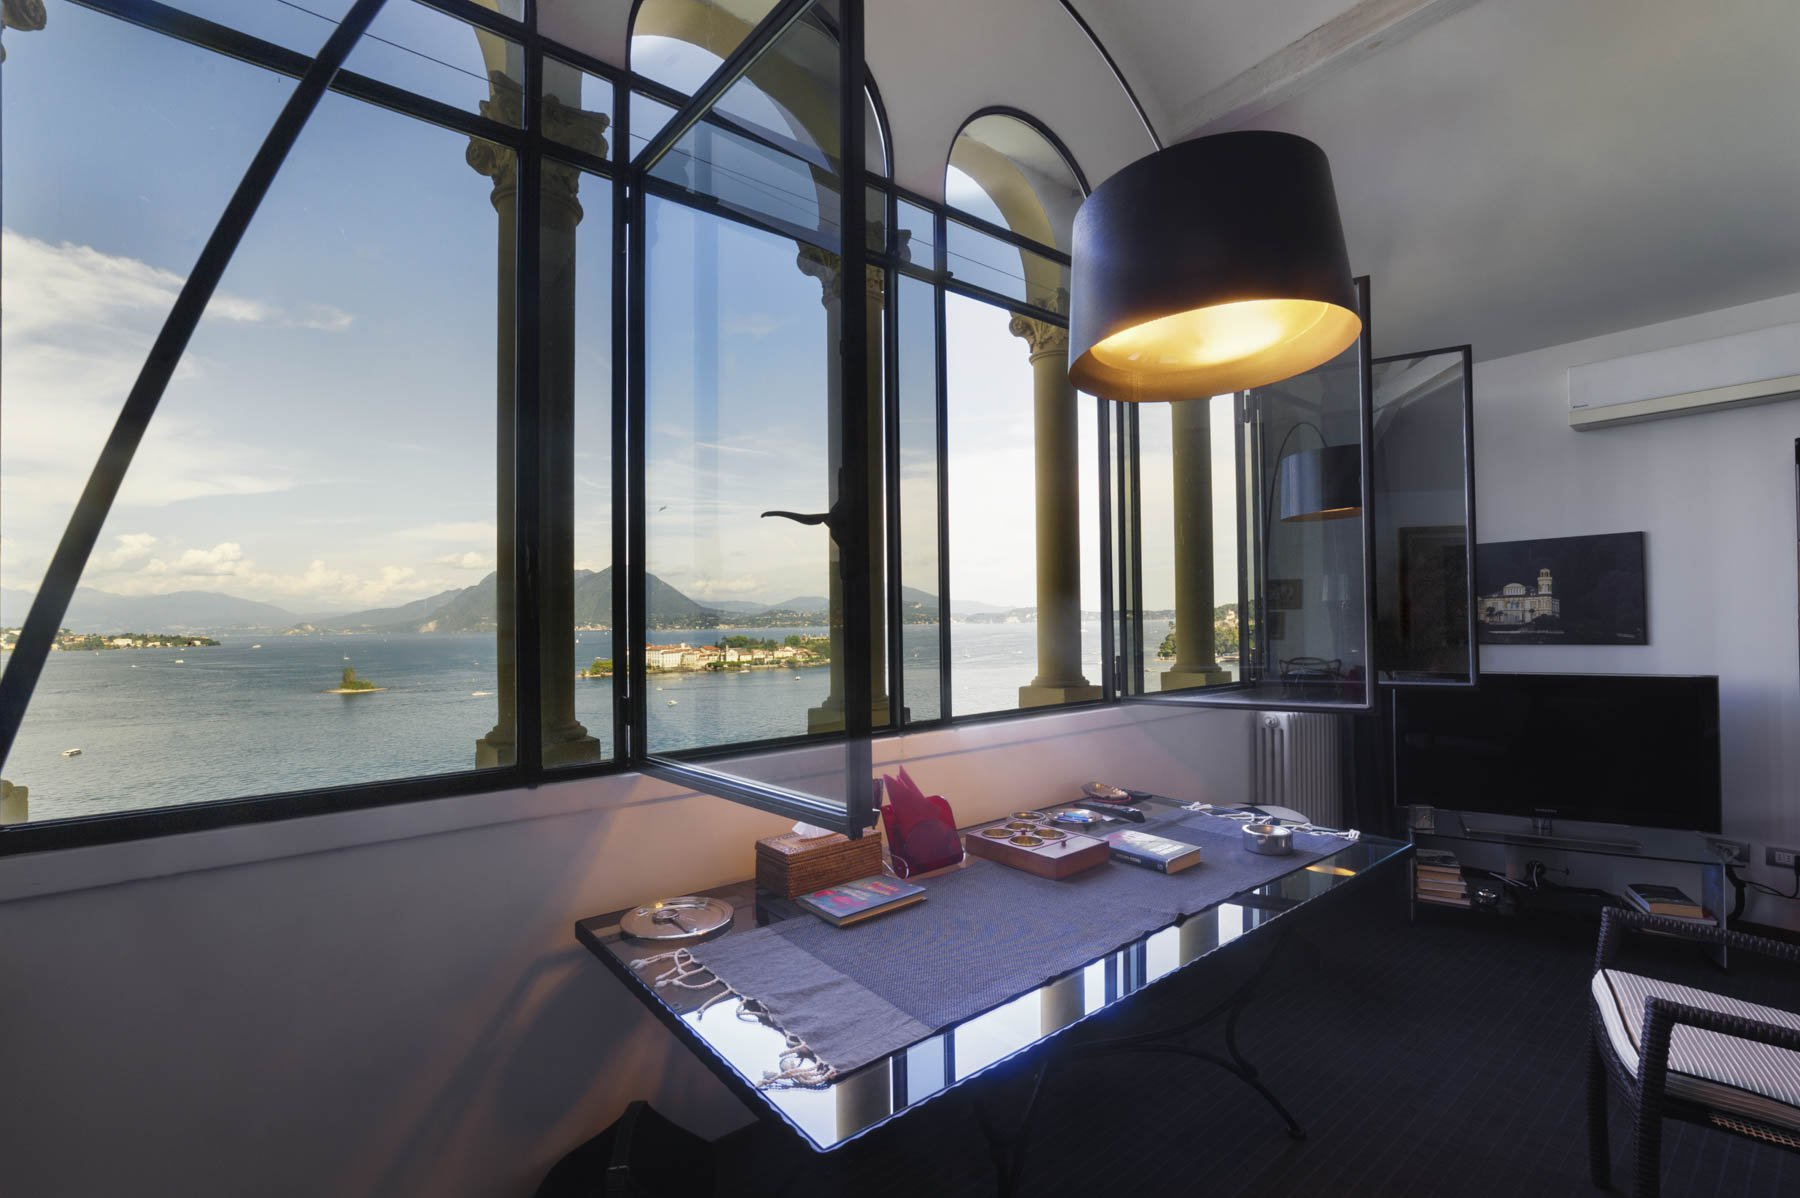 Apartment for sale in Baveno, inside a historic lake front villa - living room facing the lake